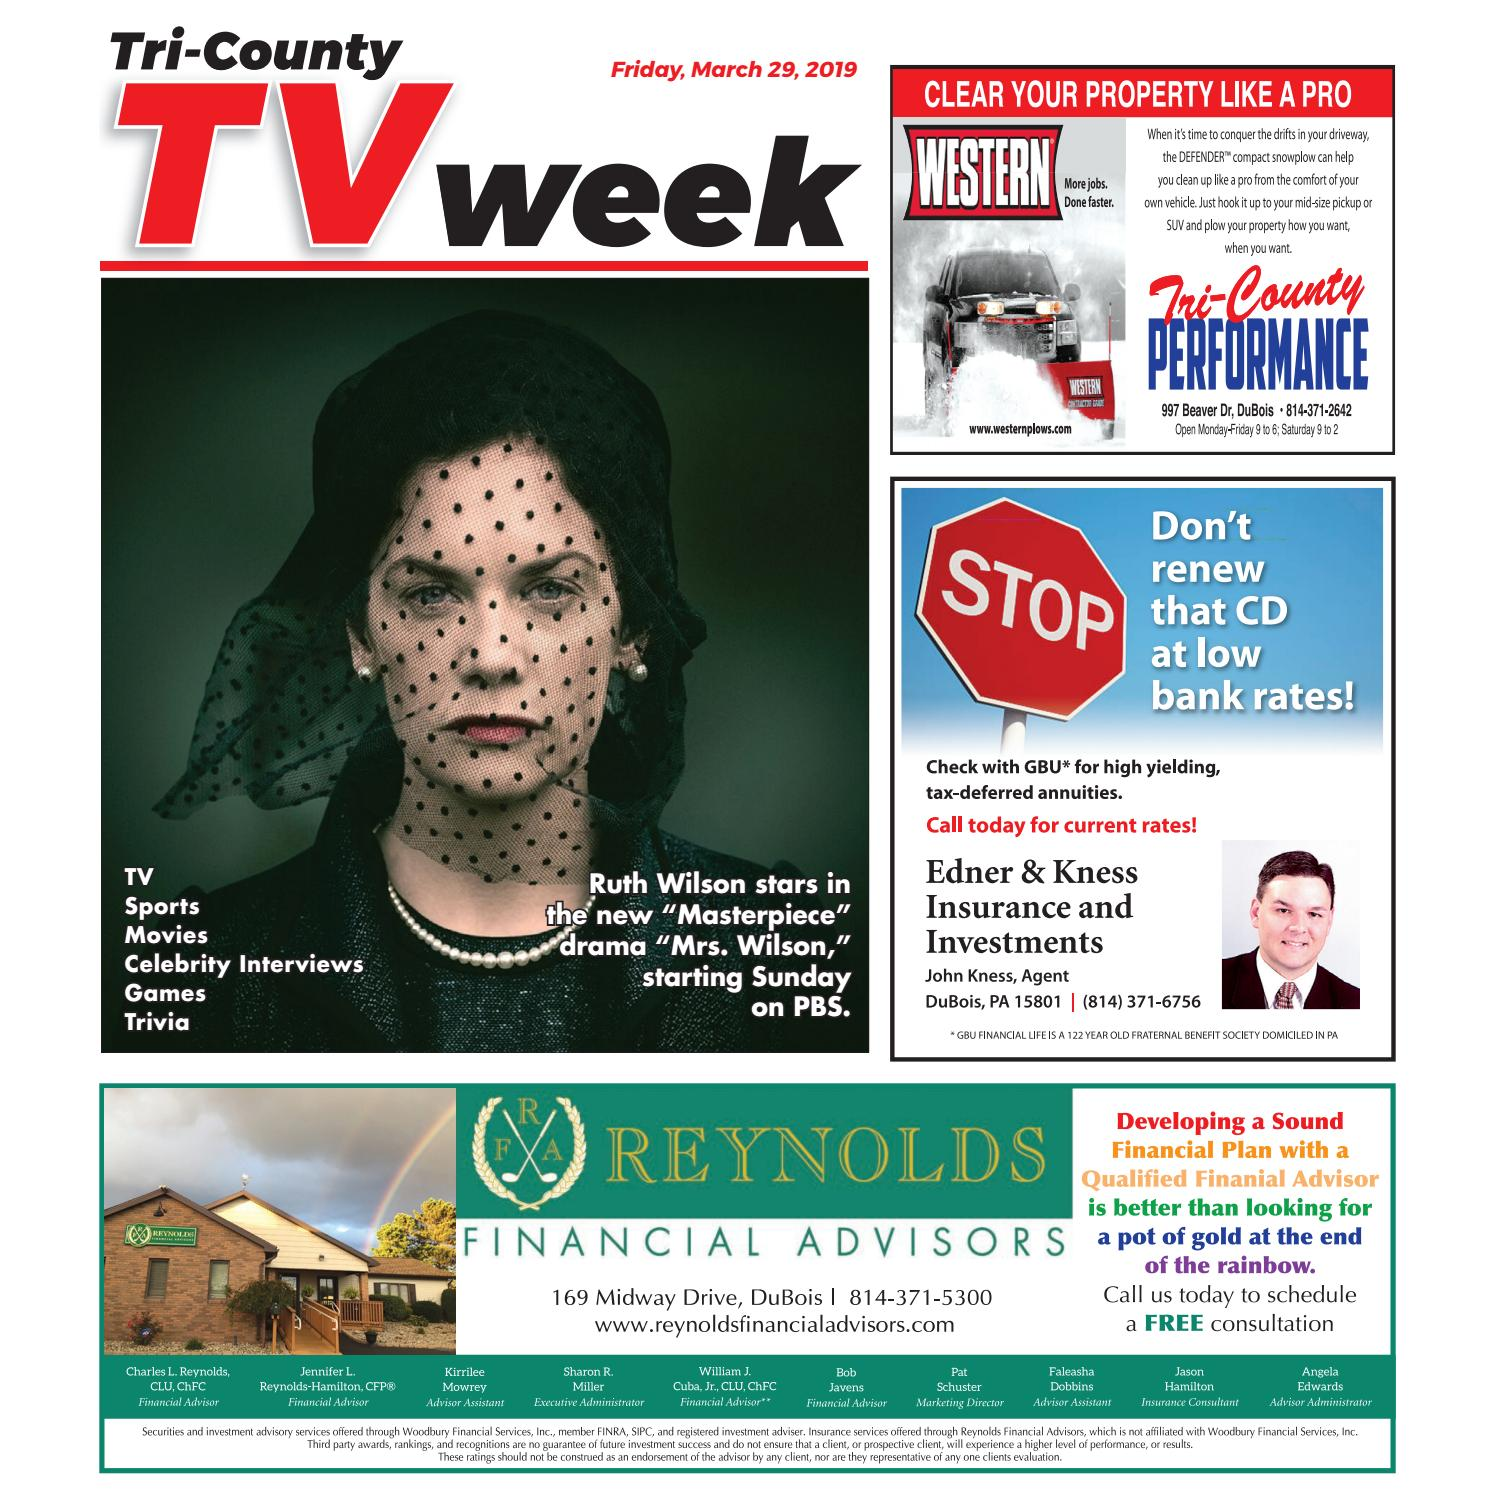 4c8d815d3 TV Week, Friday, March 29, 2019 by Tri-County TV Week - issuu